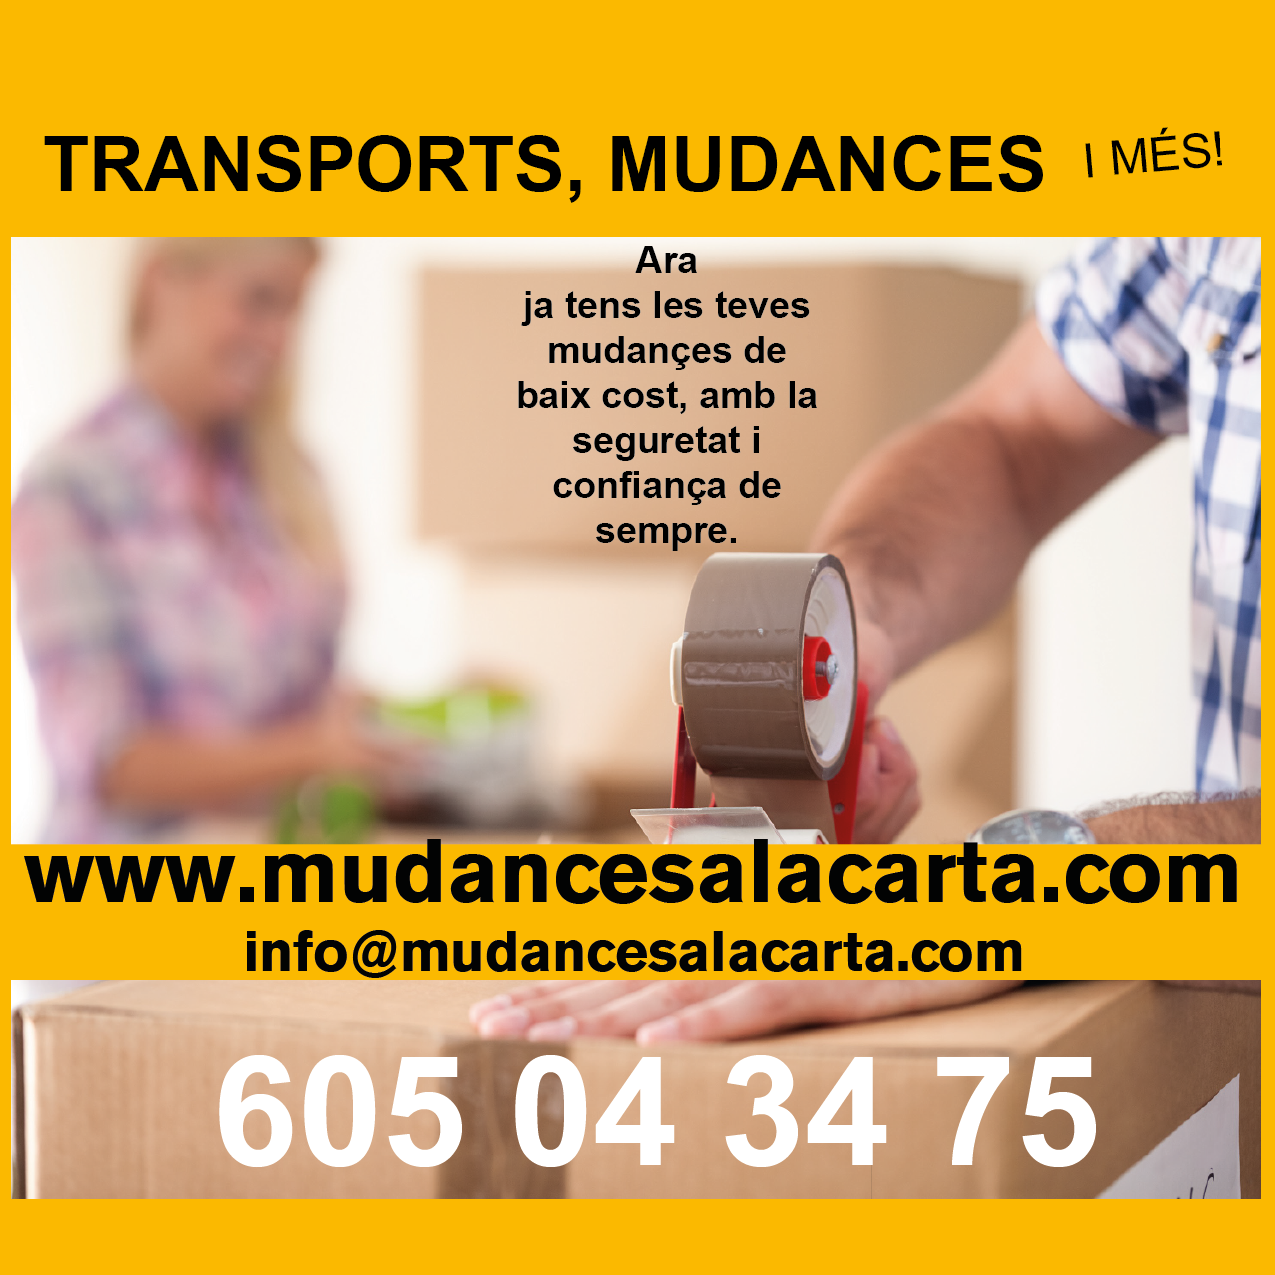 MUDANCES A LA CARTA